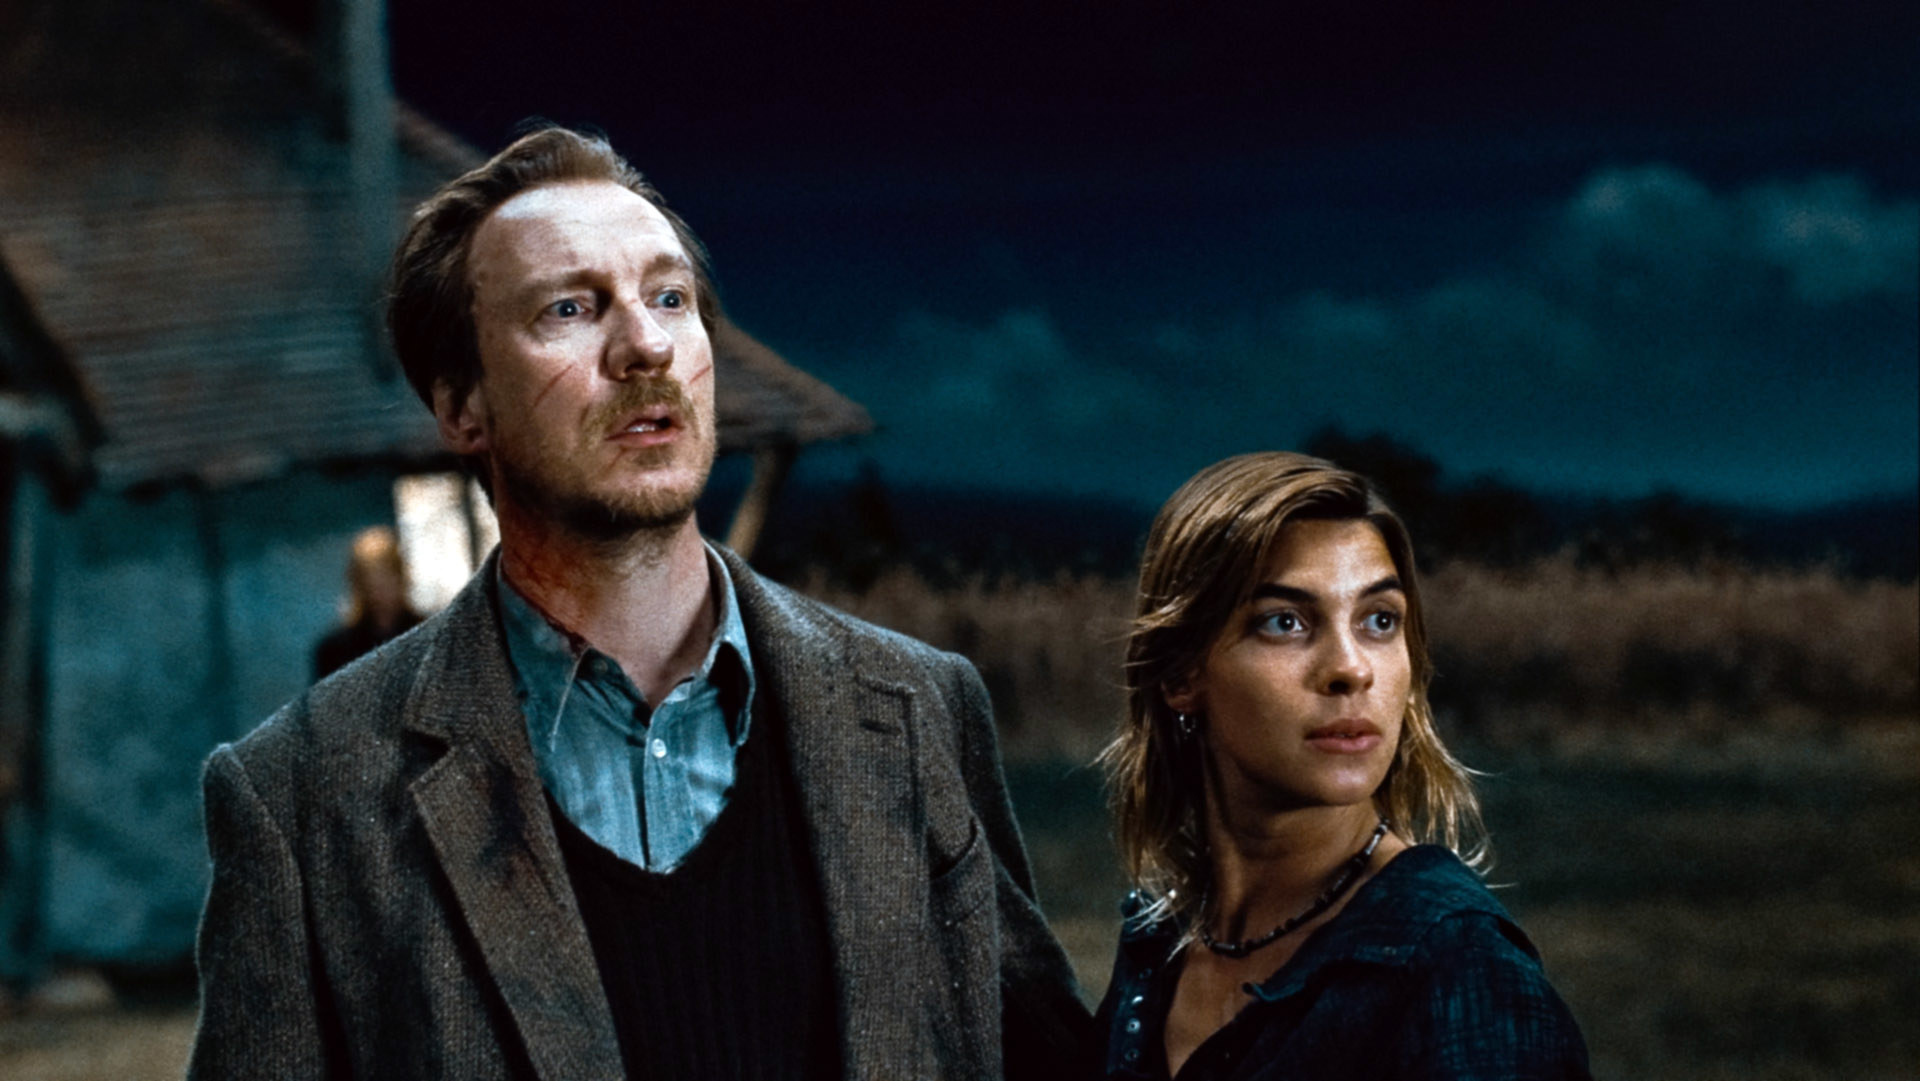 Remus standing with Tonks